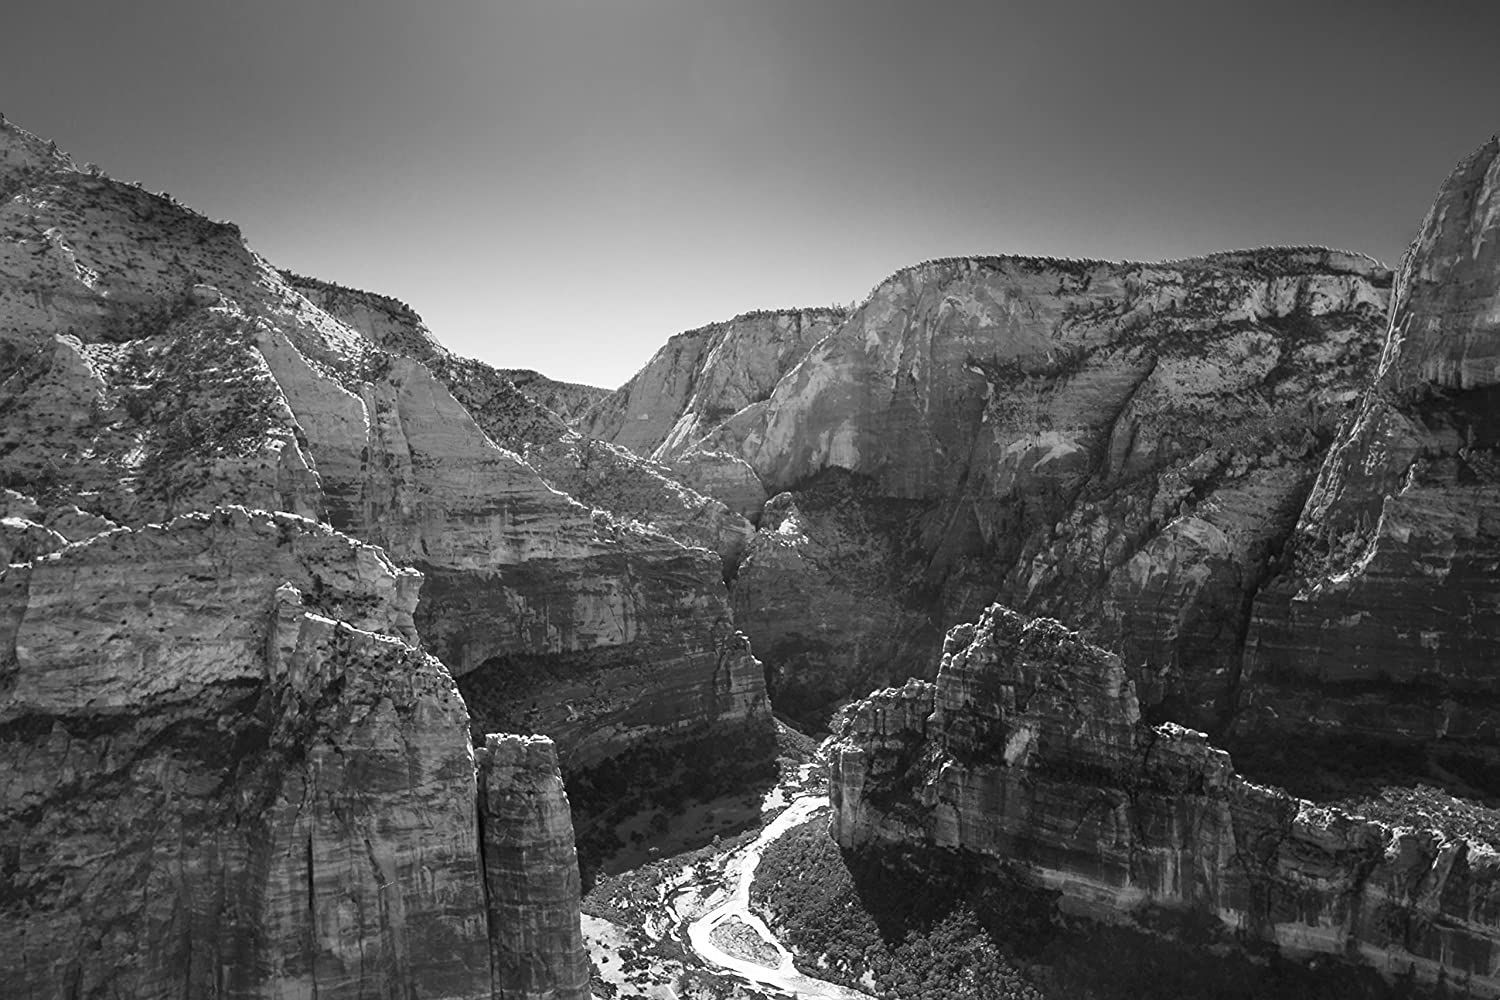 Amazon com angels landing photo print on canvas or paper zion national park wall art black and white handmade